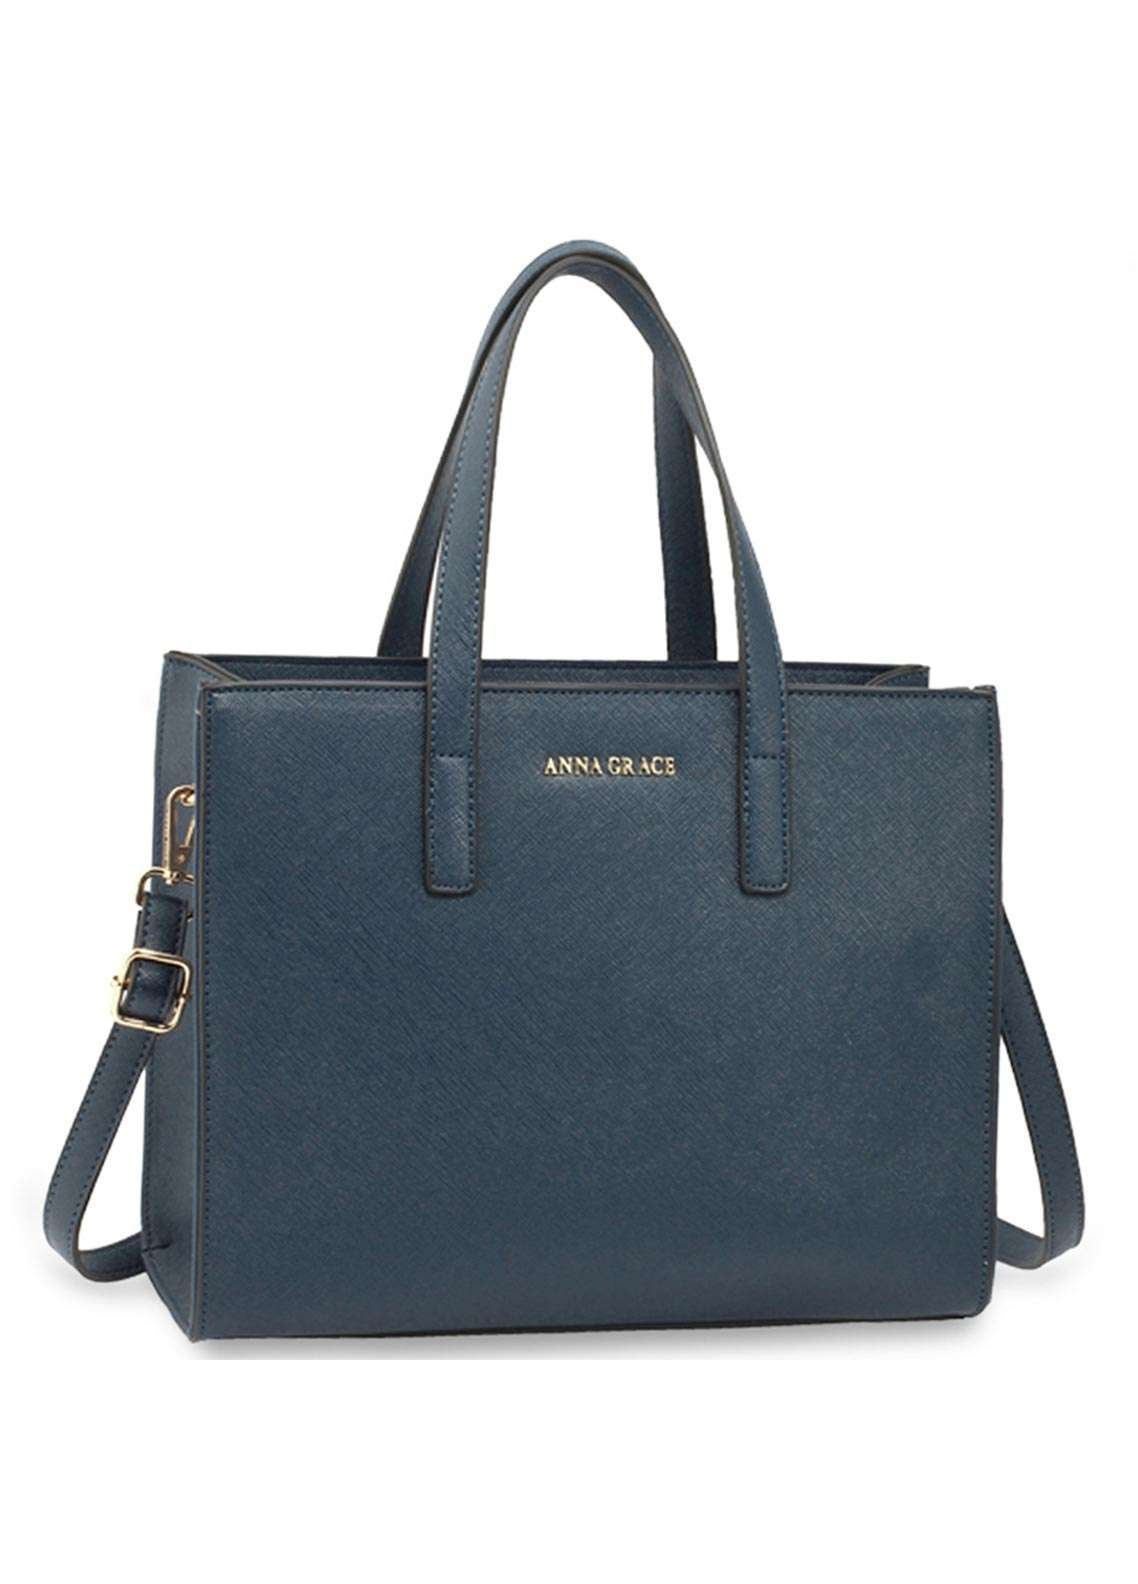 Anna Grace London Faux Leather Tote Bags  for Women  Navy with Smooth Texture